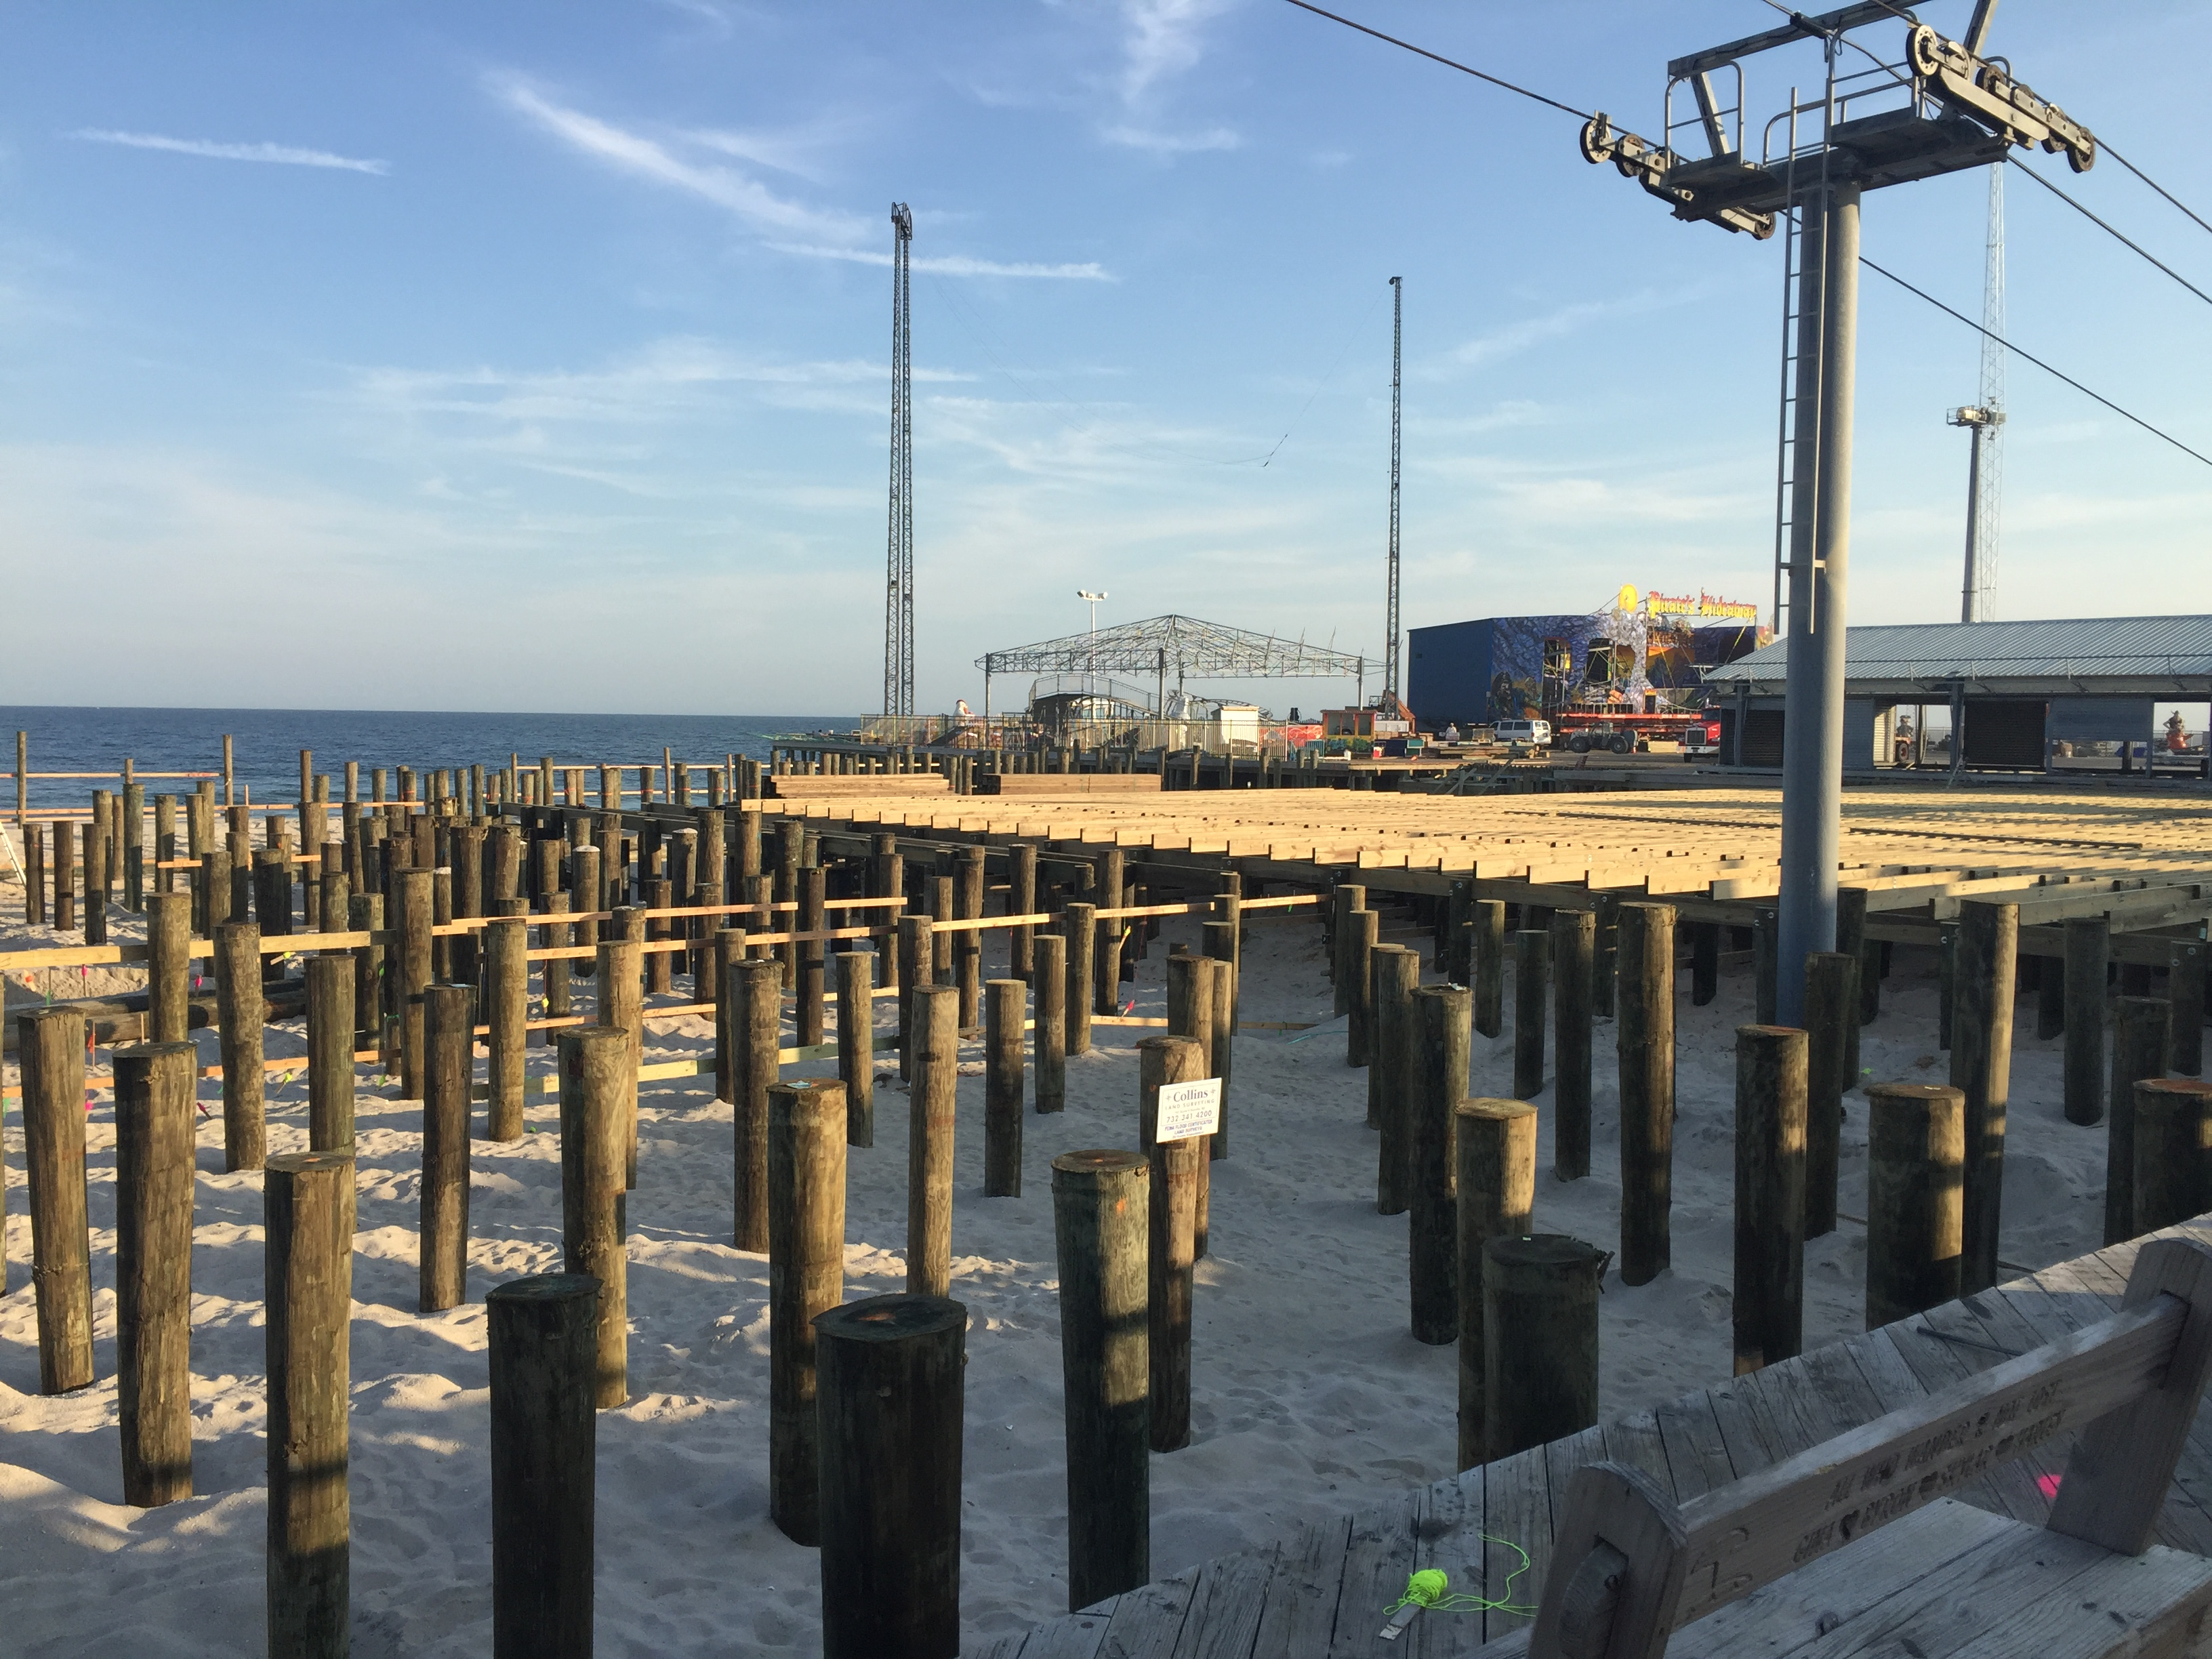 Construction on the Casino Pier expansion during the first week of November 2016. (Photo: Daniel Nee)